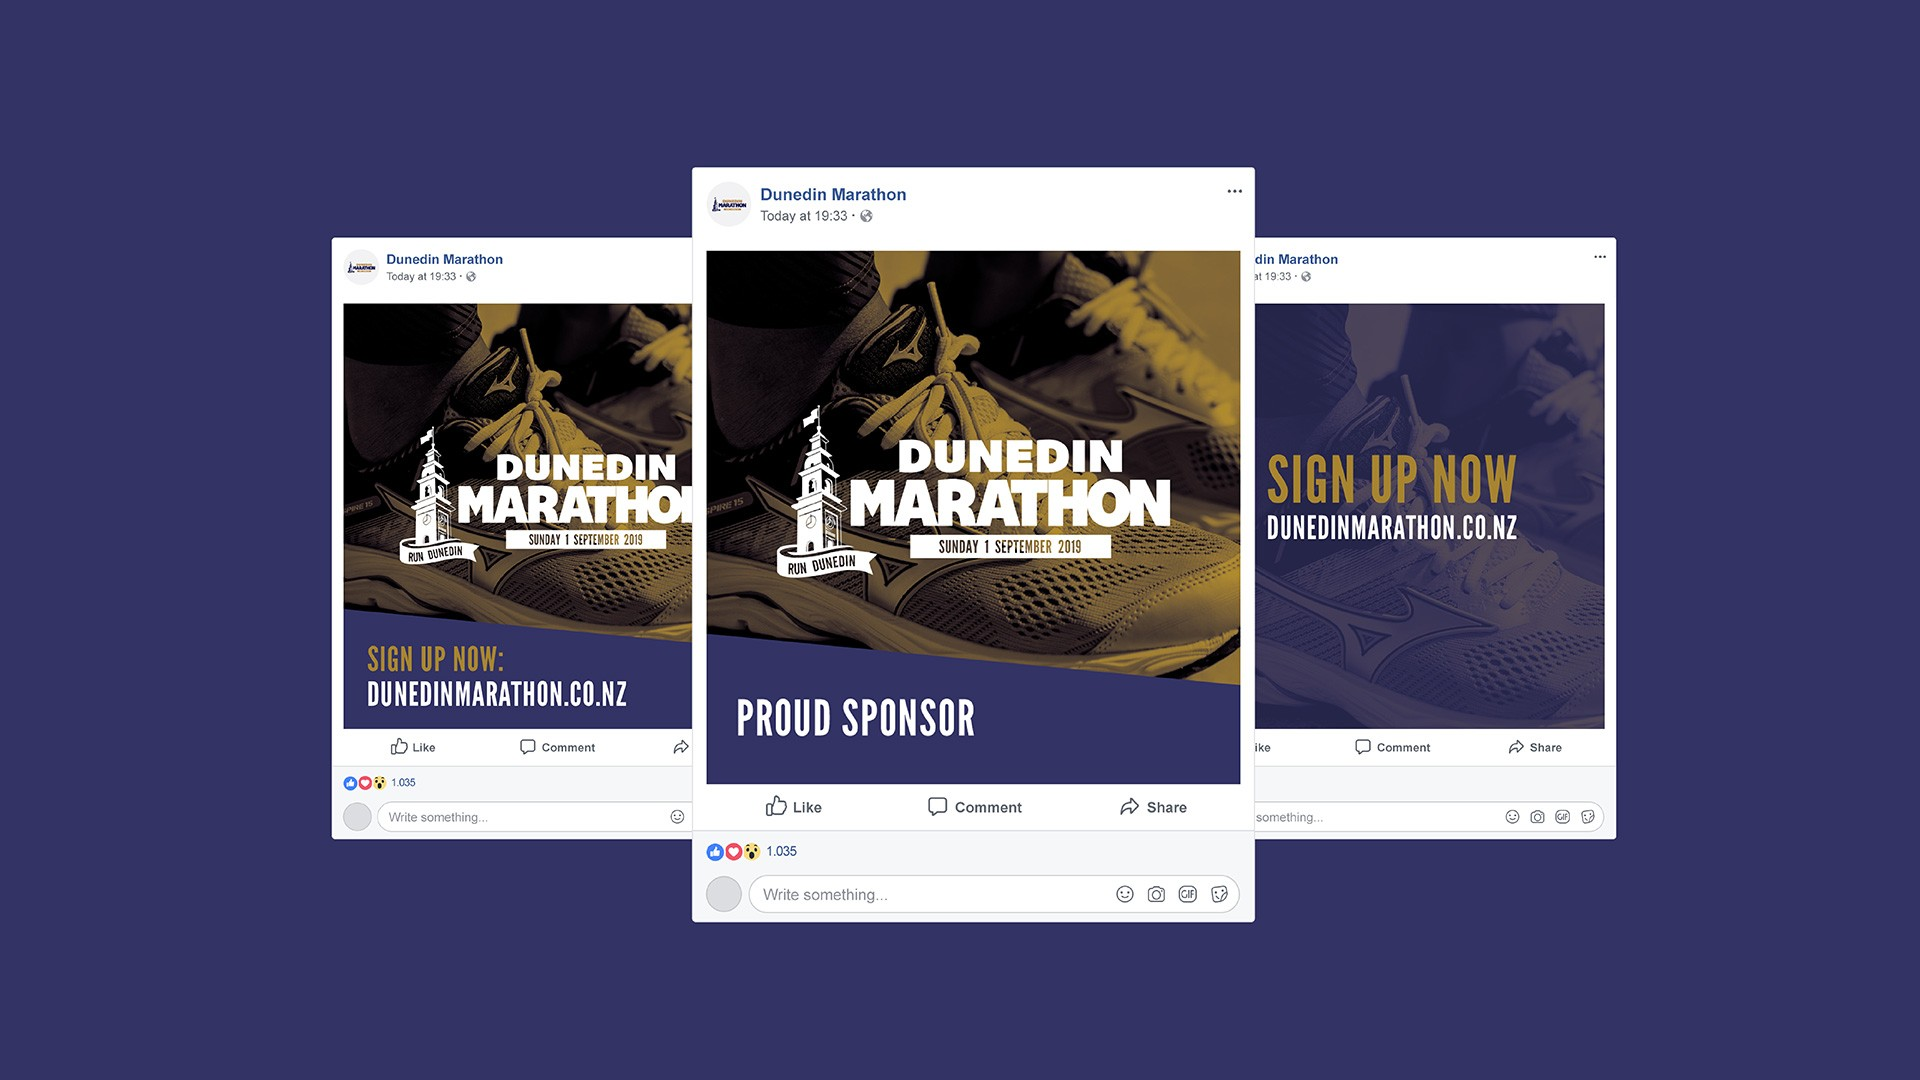 dunedin marathon digital marketing